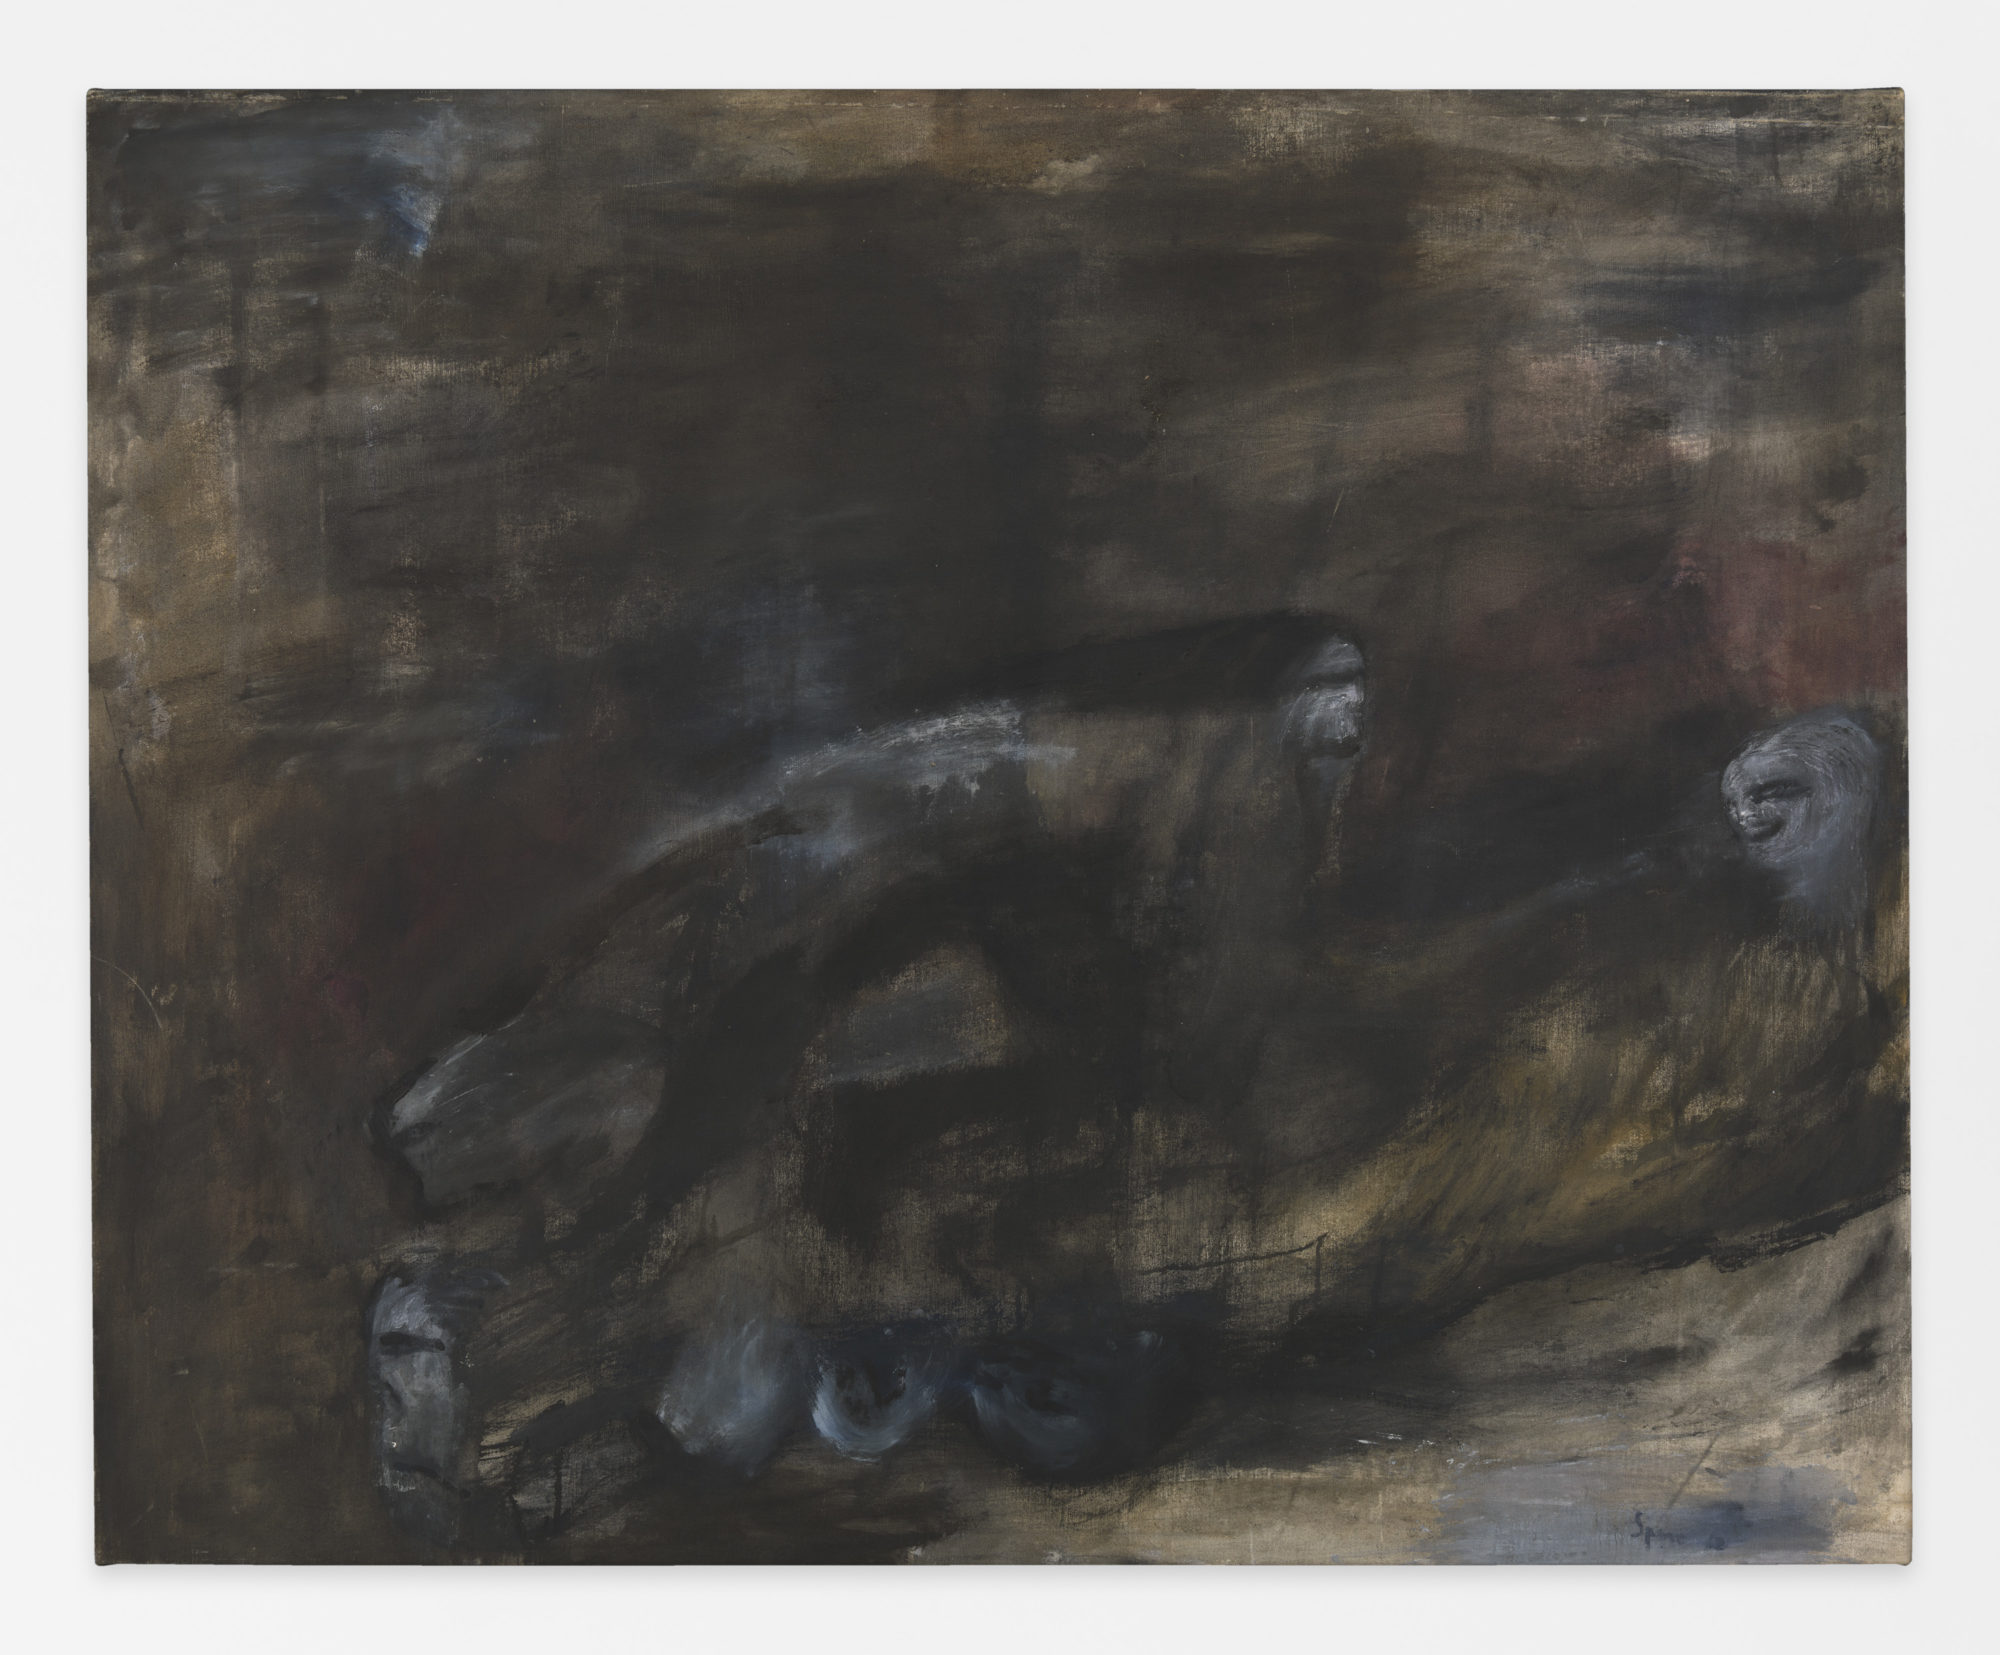 Nancy Spero. Nightmare Figures II. 1961 . Oil on canvas . 129.5 x 160 cm (51 x 63 inches). © 2019 The Nancy Spero and Leon Golub Foundation for the Arts/Licensed by VAGA at ARS, NY, courtesy Galerie Lelong & Co. Photo: Christopher Burke Studio.